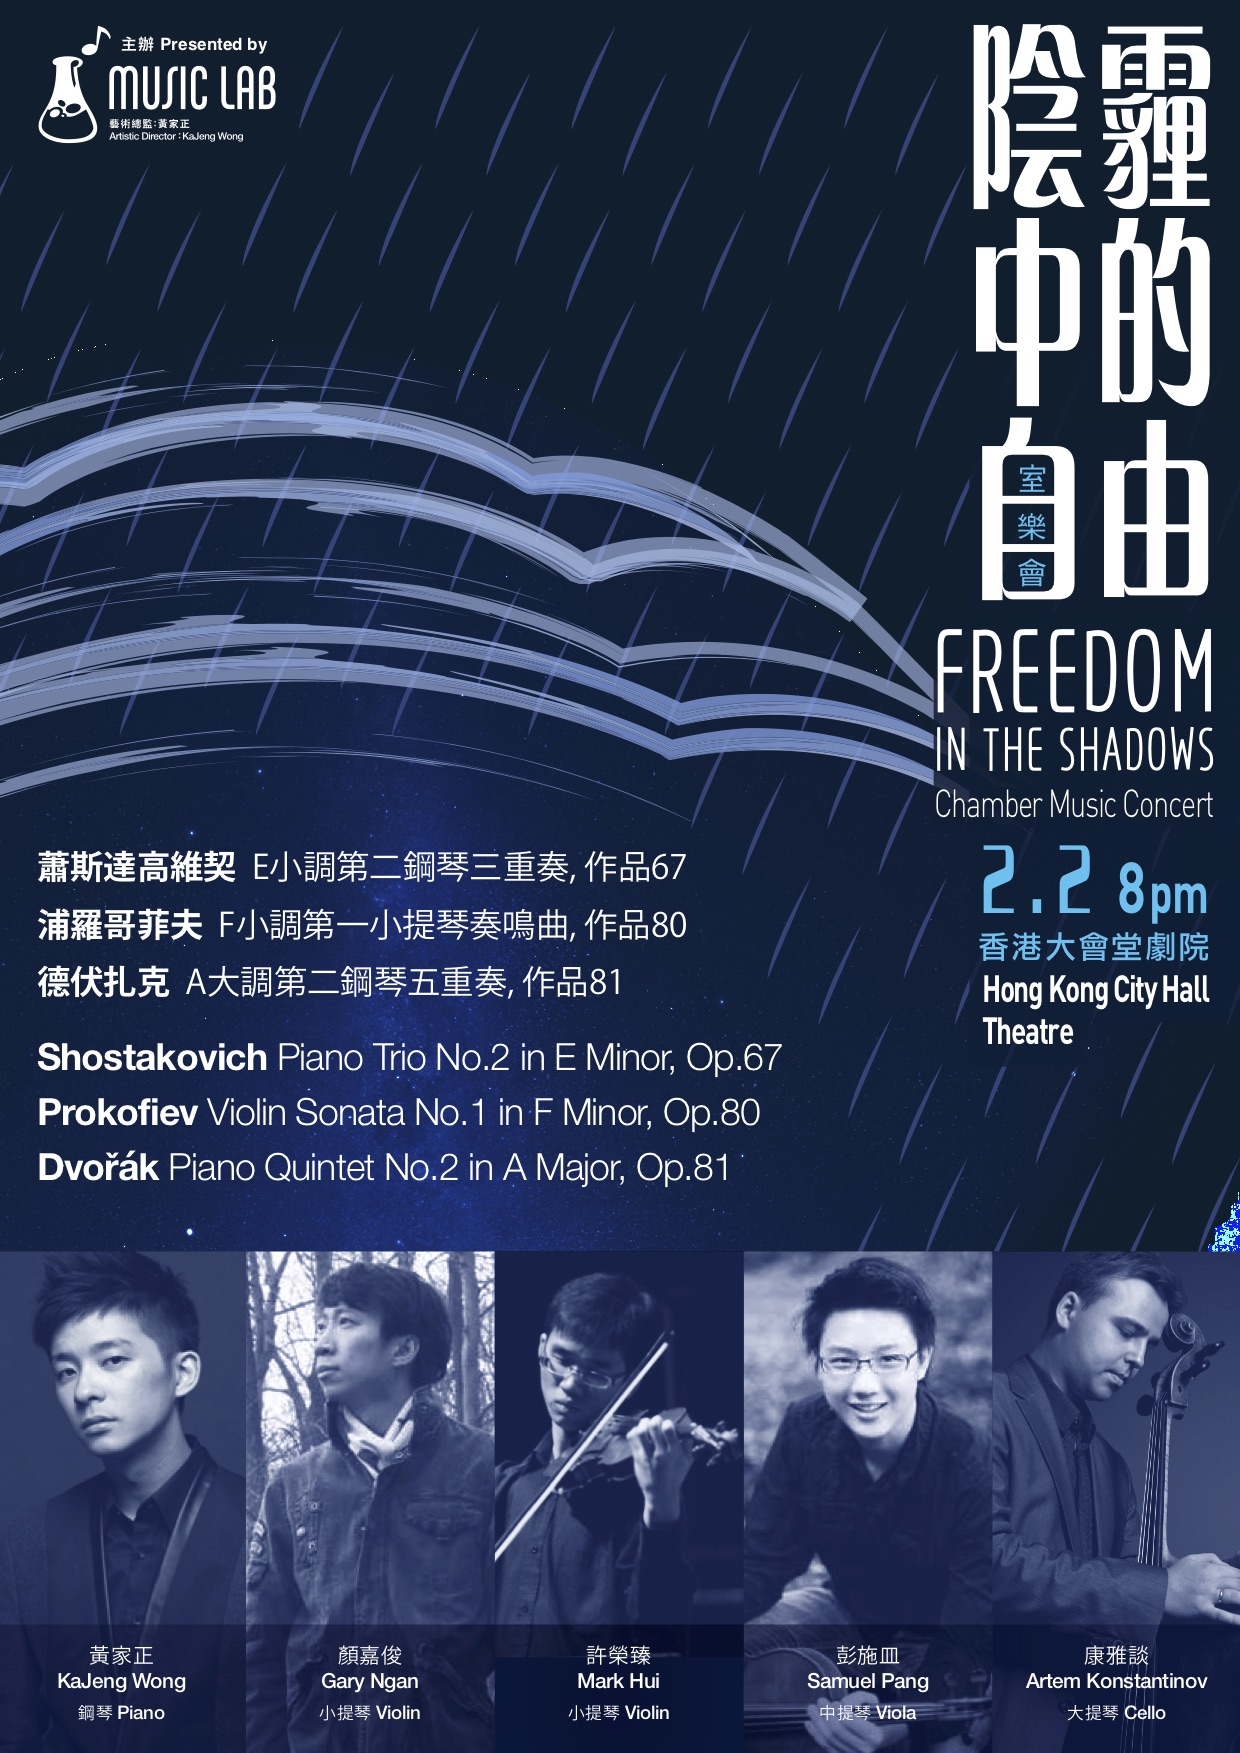 Freedom in the Shadows Chamber Music Concert - Never yielded, our giants yearned for freedom in shadows,Withered their bodies may be, their spiritsNever waned; they may beGone, but their ethos will pass on.PROGRAMMEPiano Trio No.2 in E Minor, Op.67 –ShostakovichKaJeng Wong (Piano), Gary Ngan (Violin), Artem Konstantinov (Cello)Violin Sonata No.1 in F Minor, Op.80 –ProkofievKaJeng Wong (Piano), Mark Hui (Violin)Piano Quintet No.2 in A Major, Op.81 – DvořřákKaJeng Wong (Piano), Gary Ngan (Violin), Mark Hui (Violin), Samuel Pang (Viola), Artem Konstantinov (Cello)